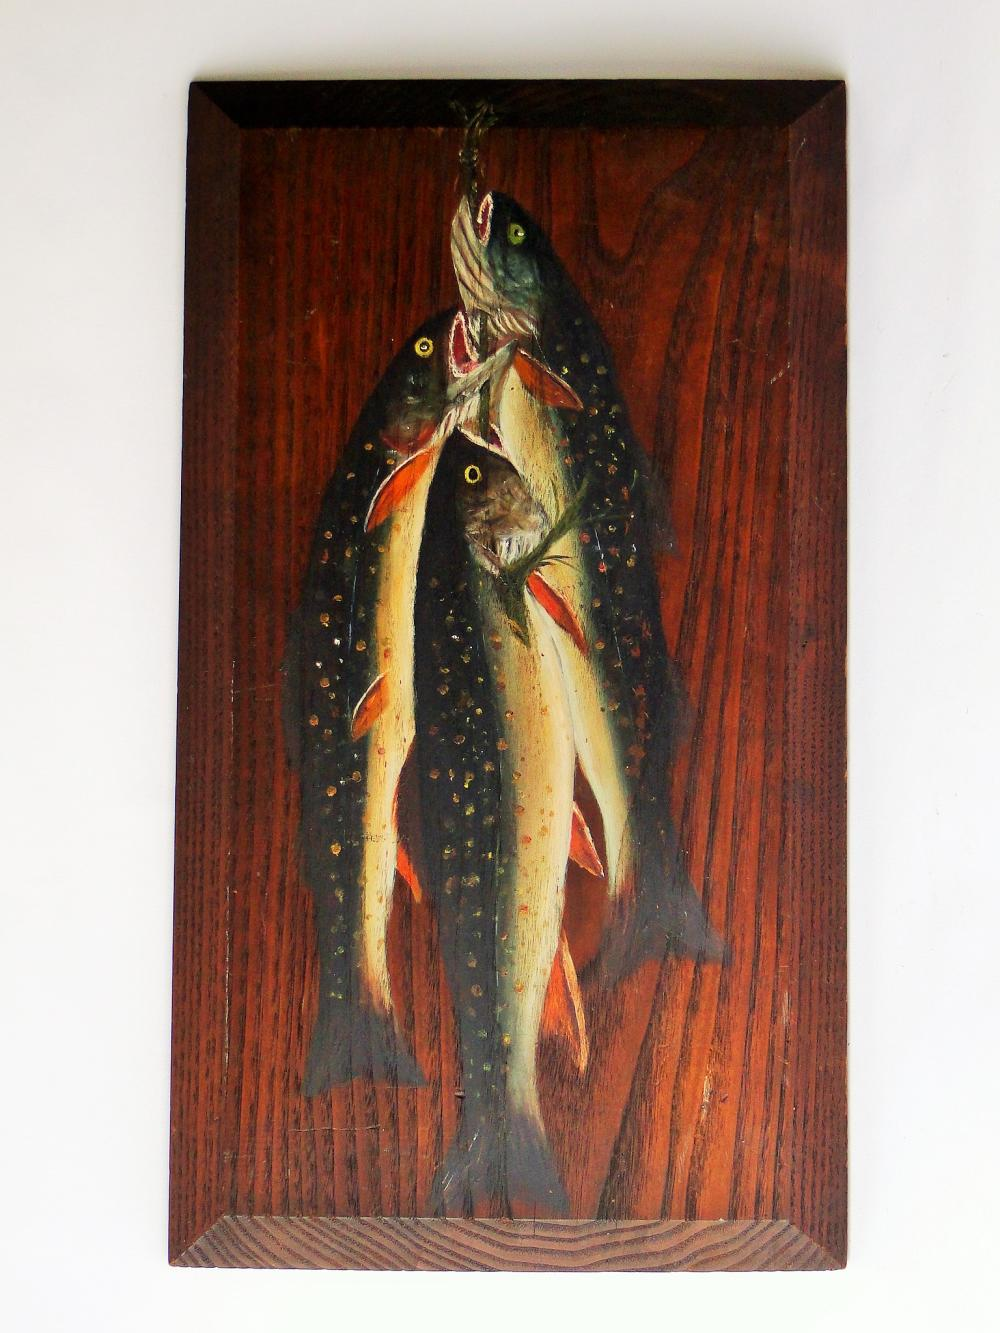 OIL PAINTING TROUT ON CHESTNUT PANEL